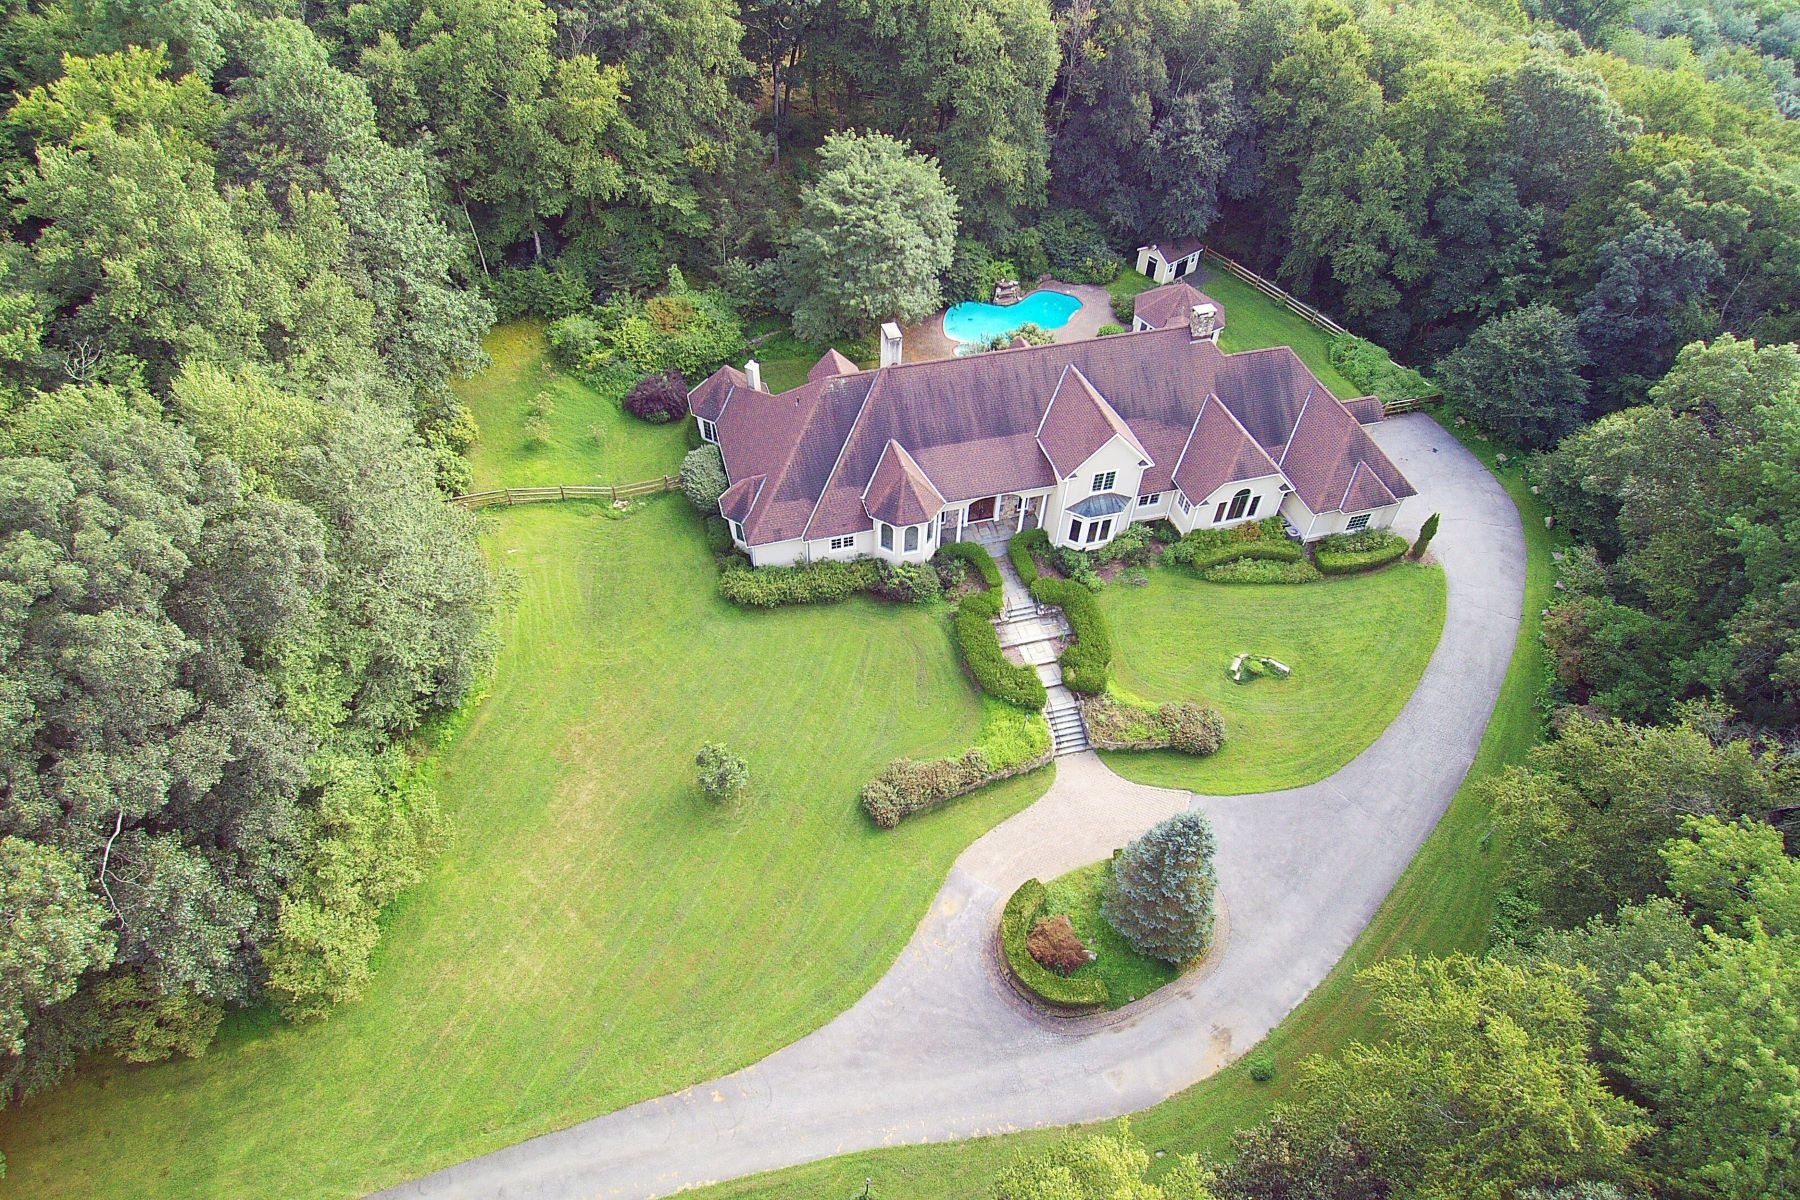 Single Family Home for Sale at Idyllic Country Manor 96 Topstone Road Redding, Connecticut 06896 United States